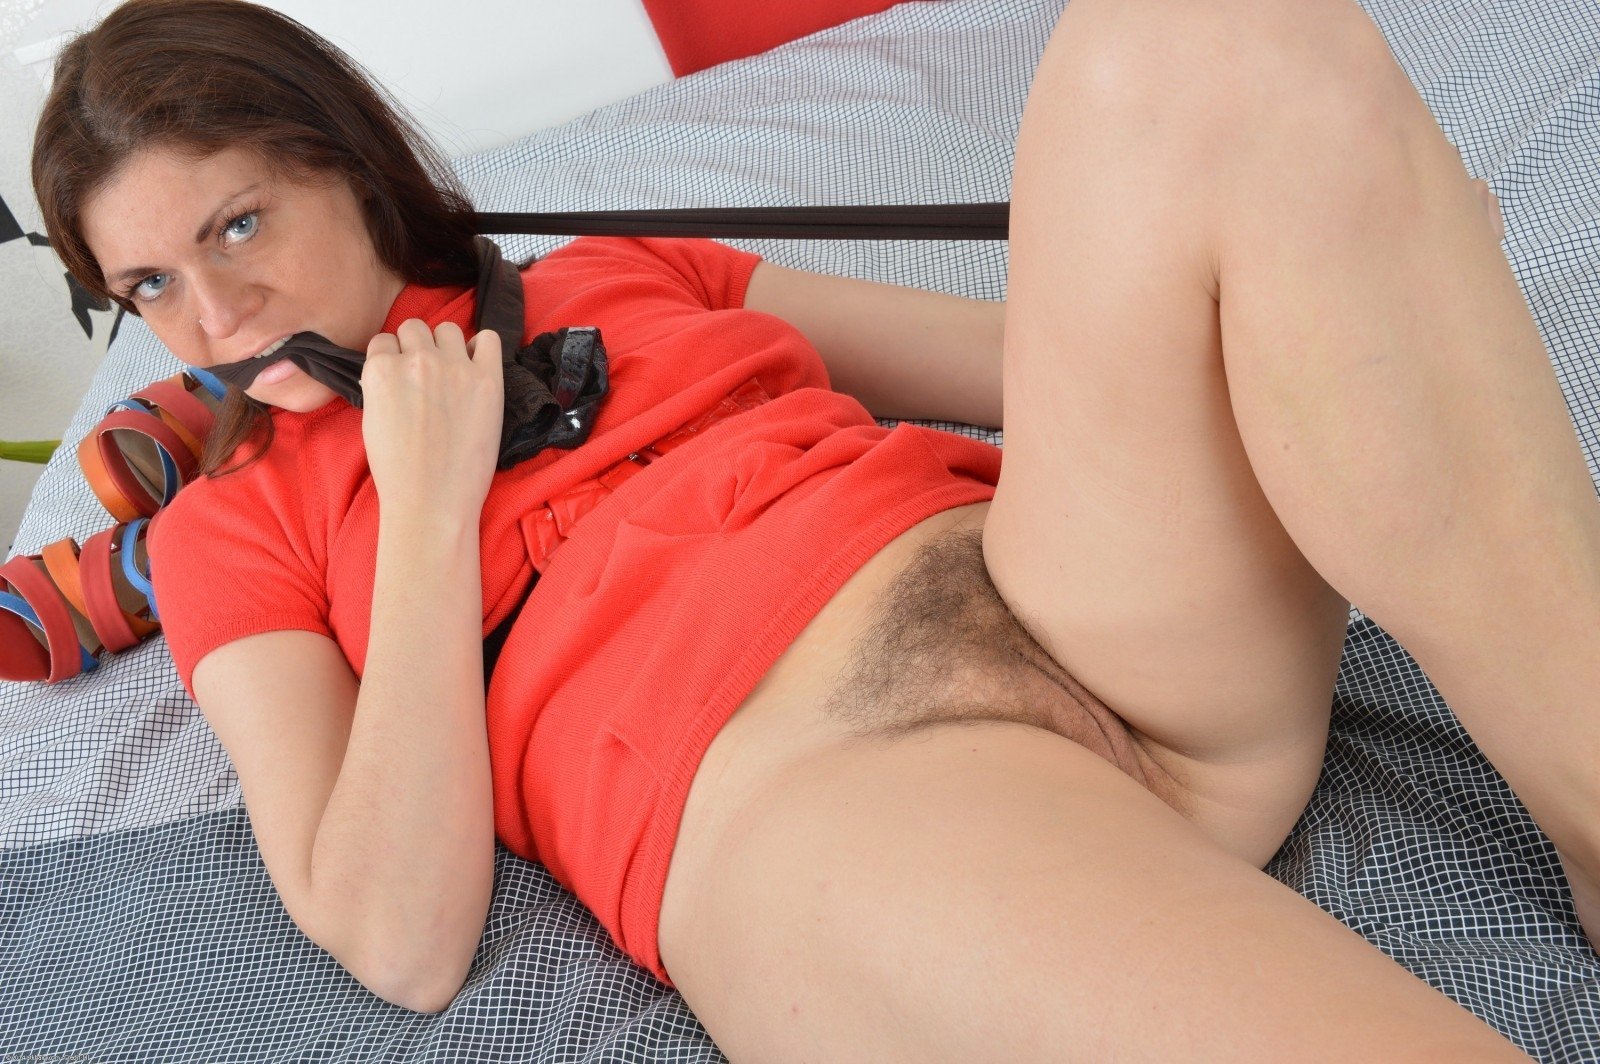 Hairy grandmother porn #1